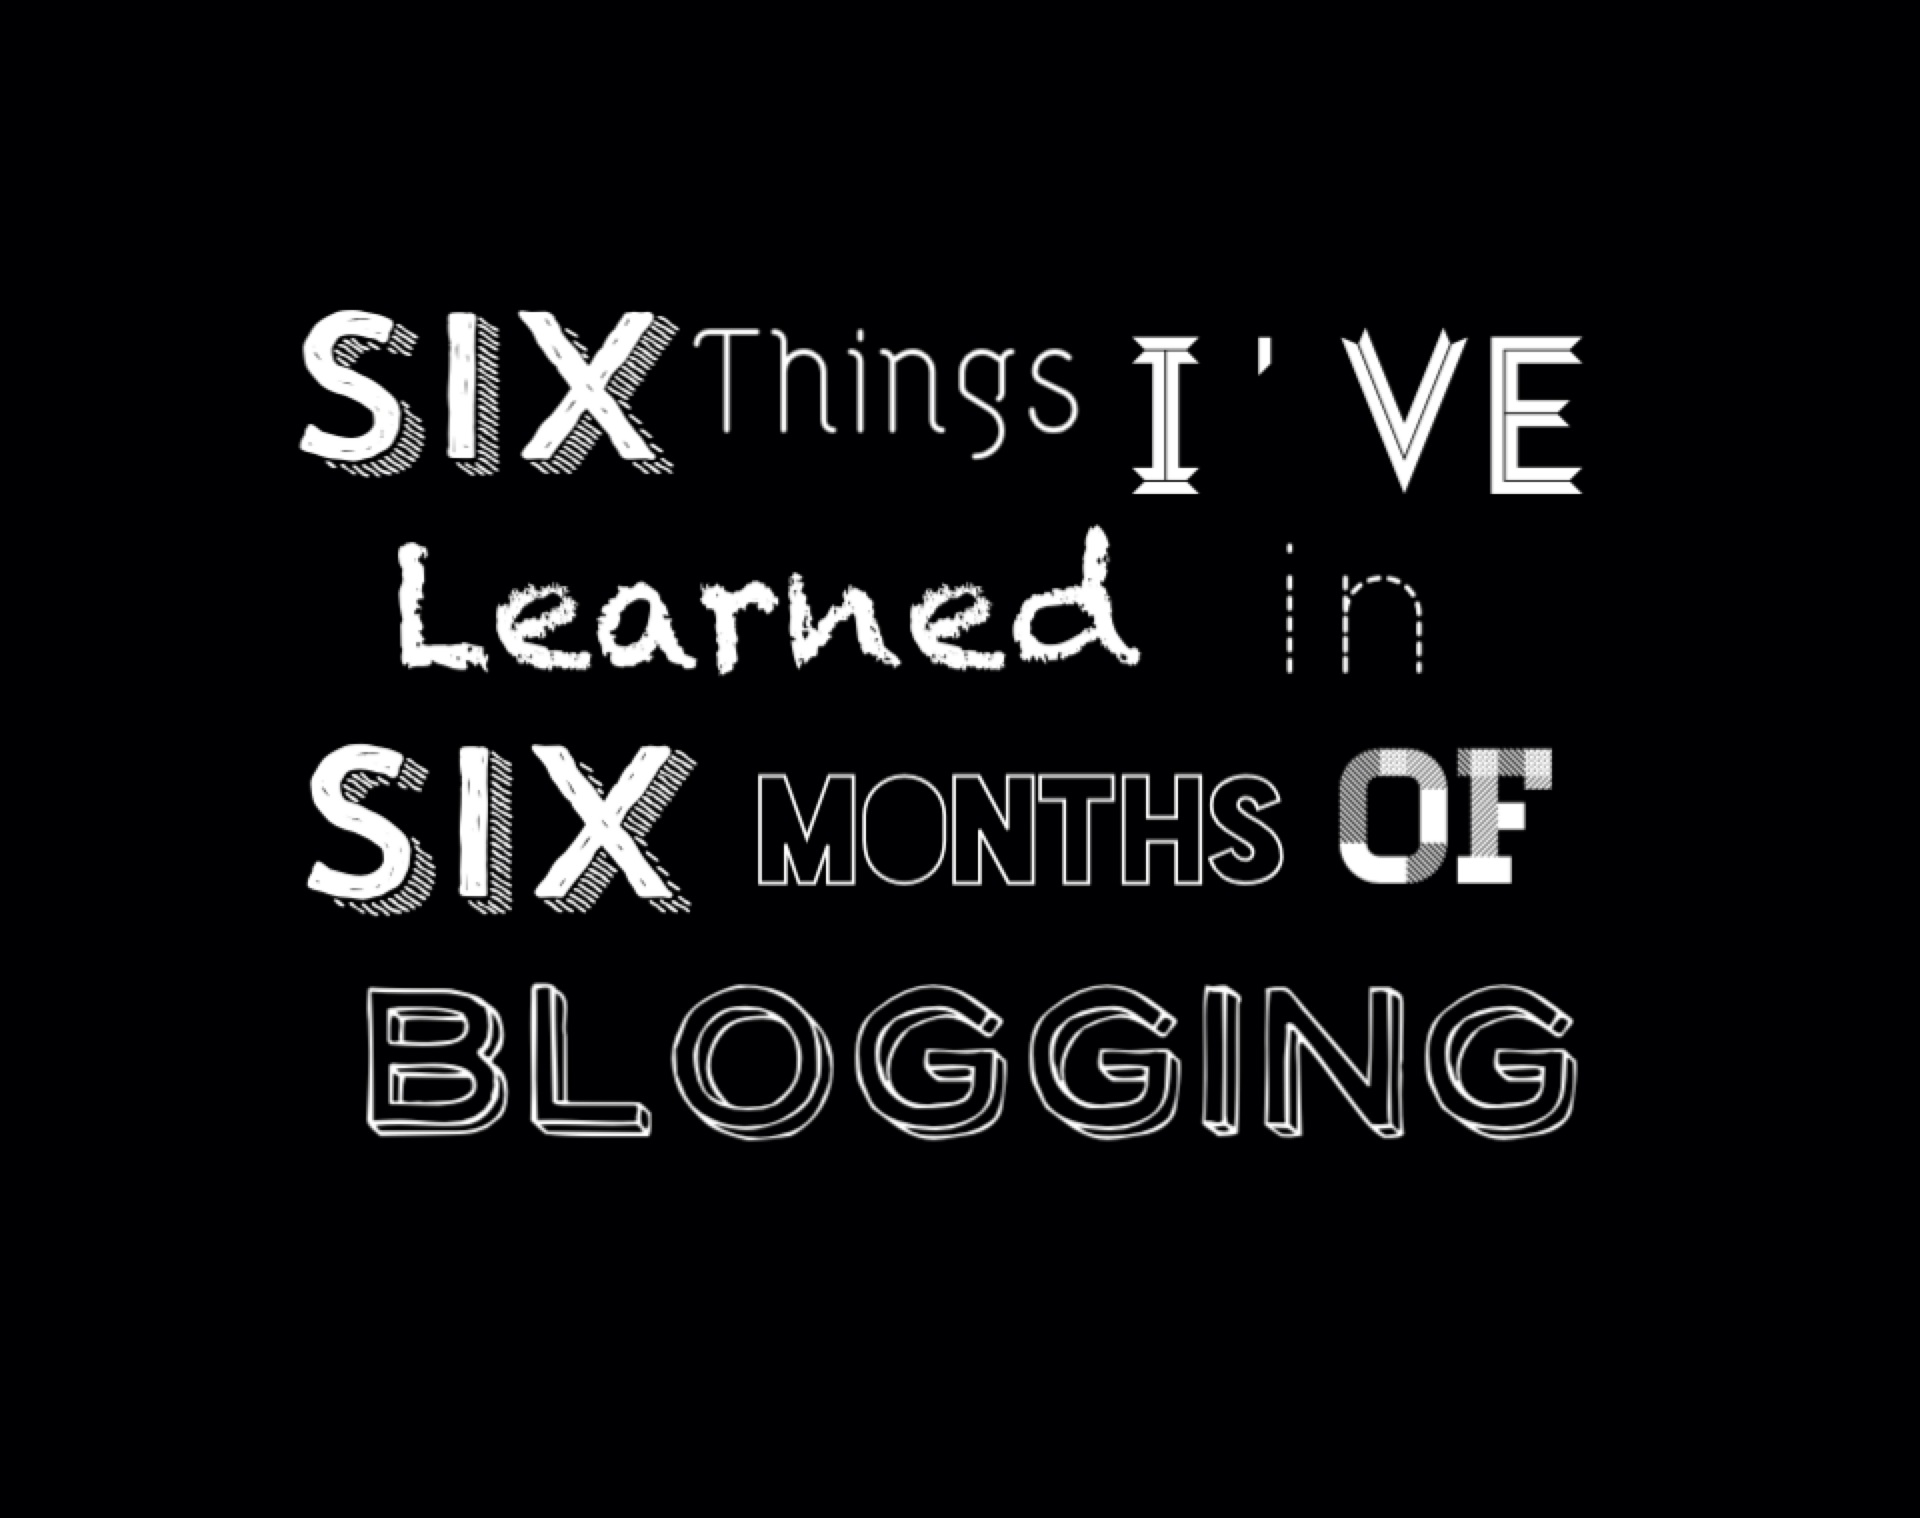 Six Things I've Learned in Six Months of Blogging